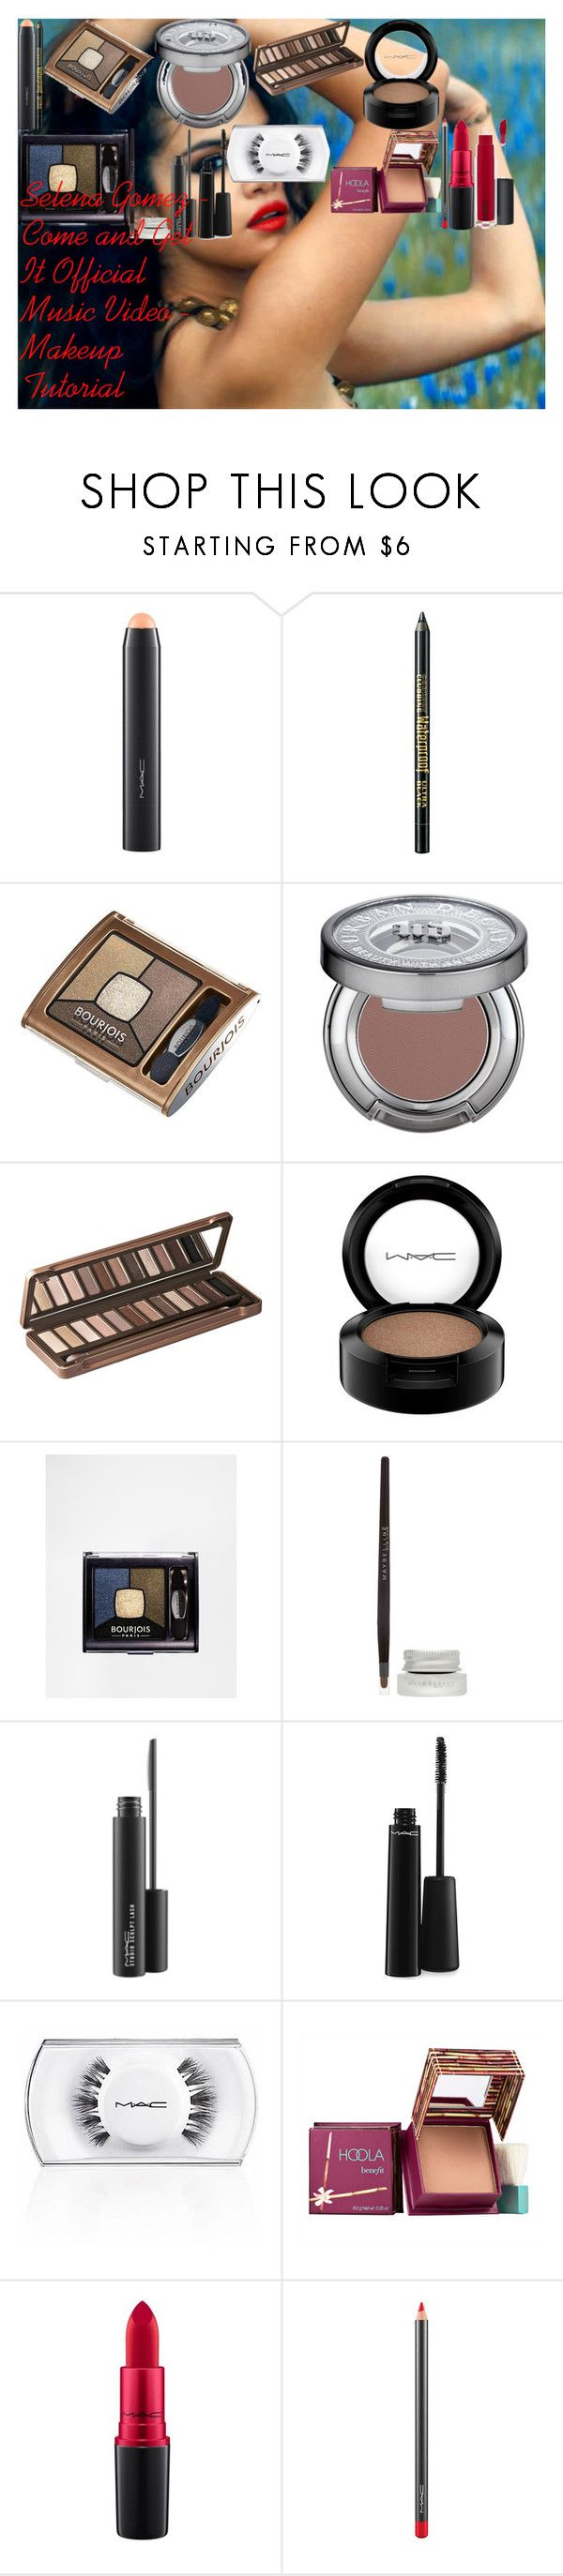 Selena Gomez - Come and Get It Official Music Video - Makeup Tutorial by oroartye-1 on Polyvore featuring beauty, Urban Decay, Hoola, MAC Cosmetics, Maybelline and Bourjois